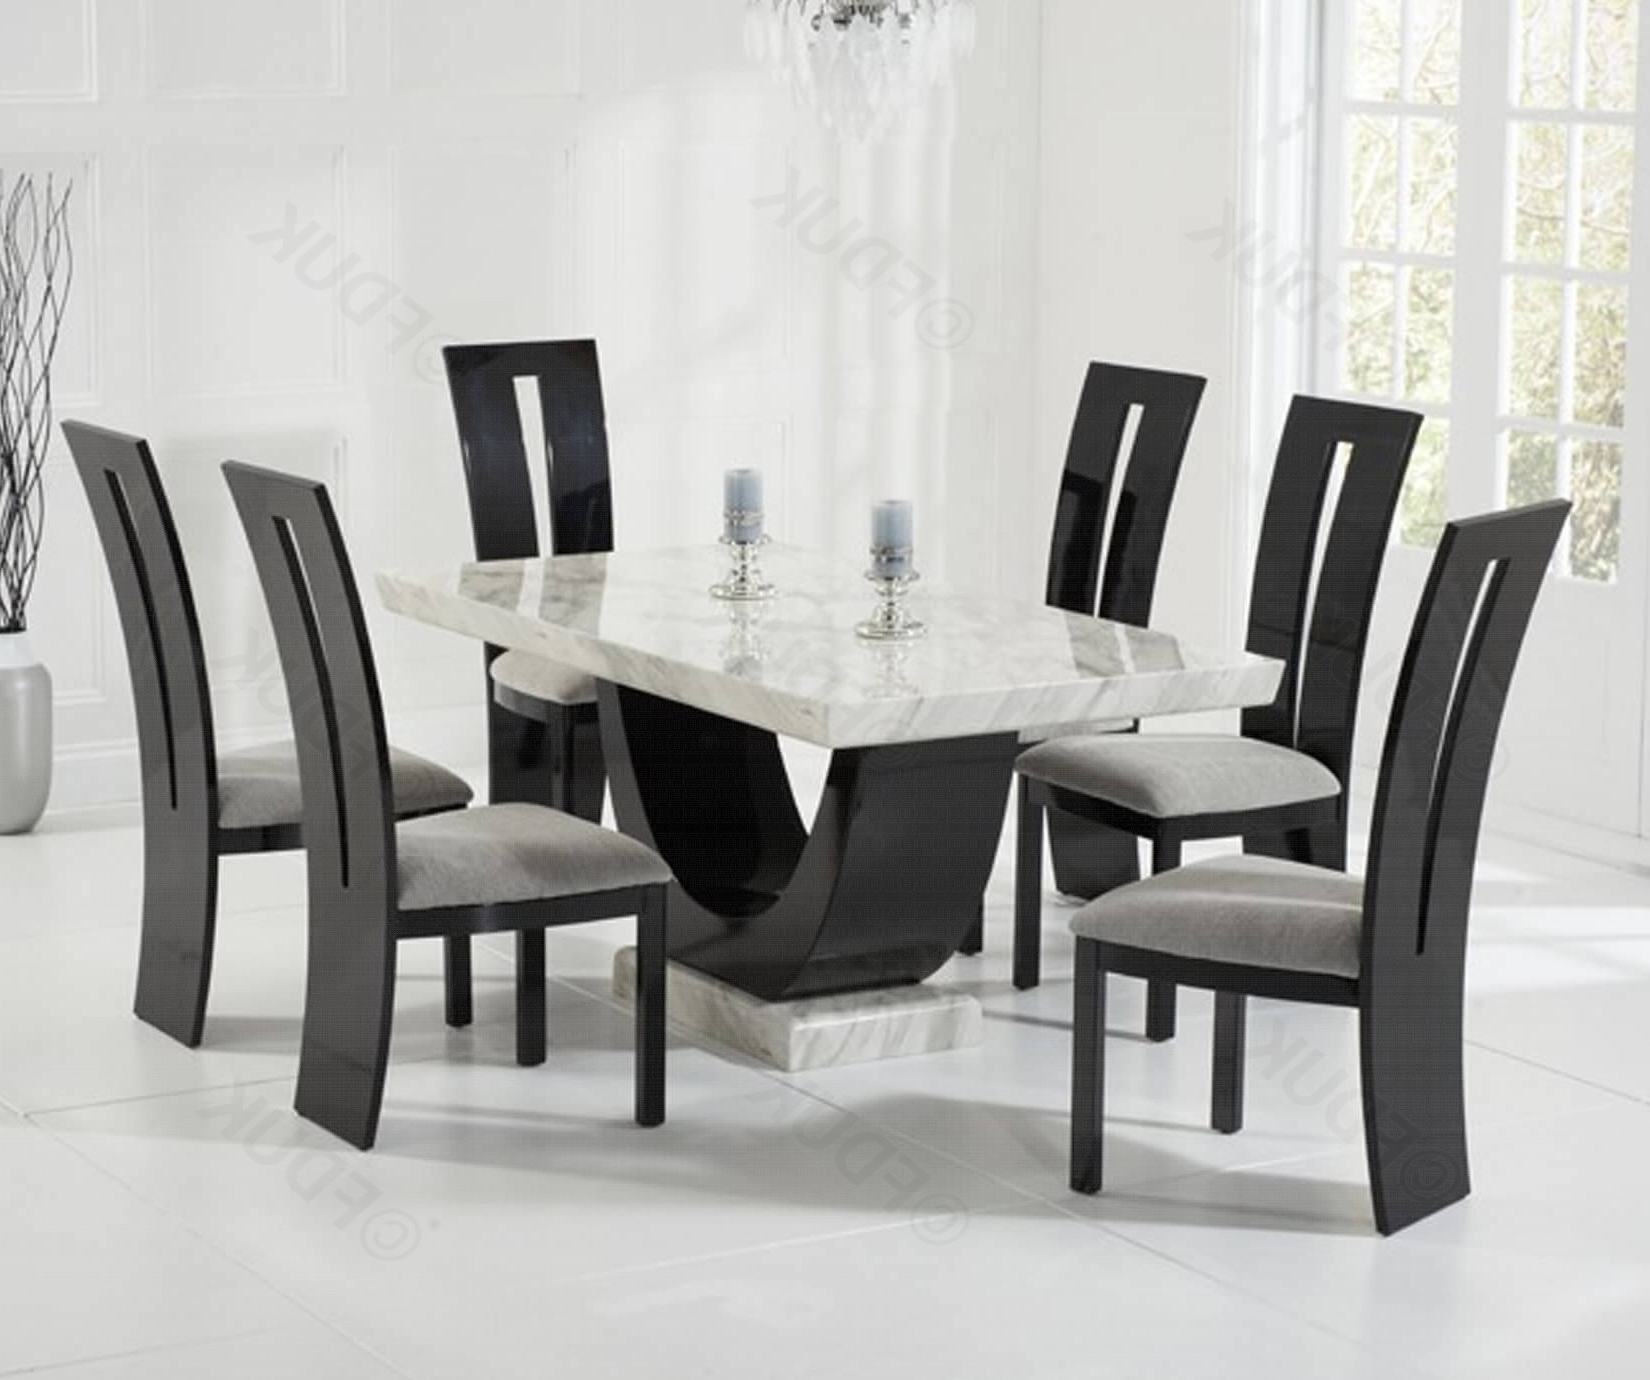 Cream And Black Constituted Marble Dining Set Within 2017 Marble Dining Chairs (Gallery 11 of 25)